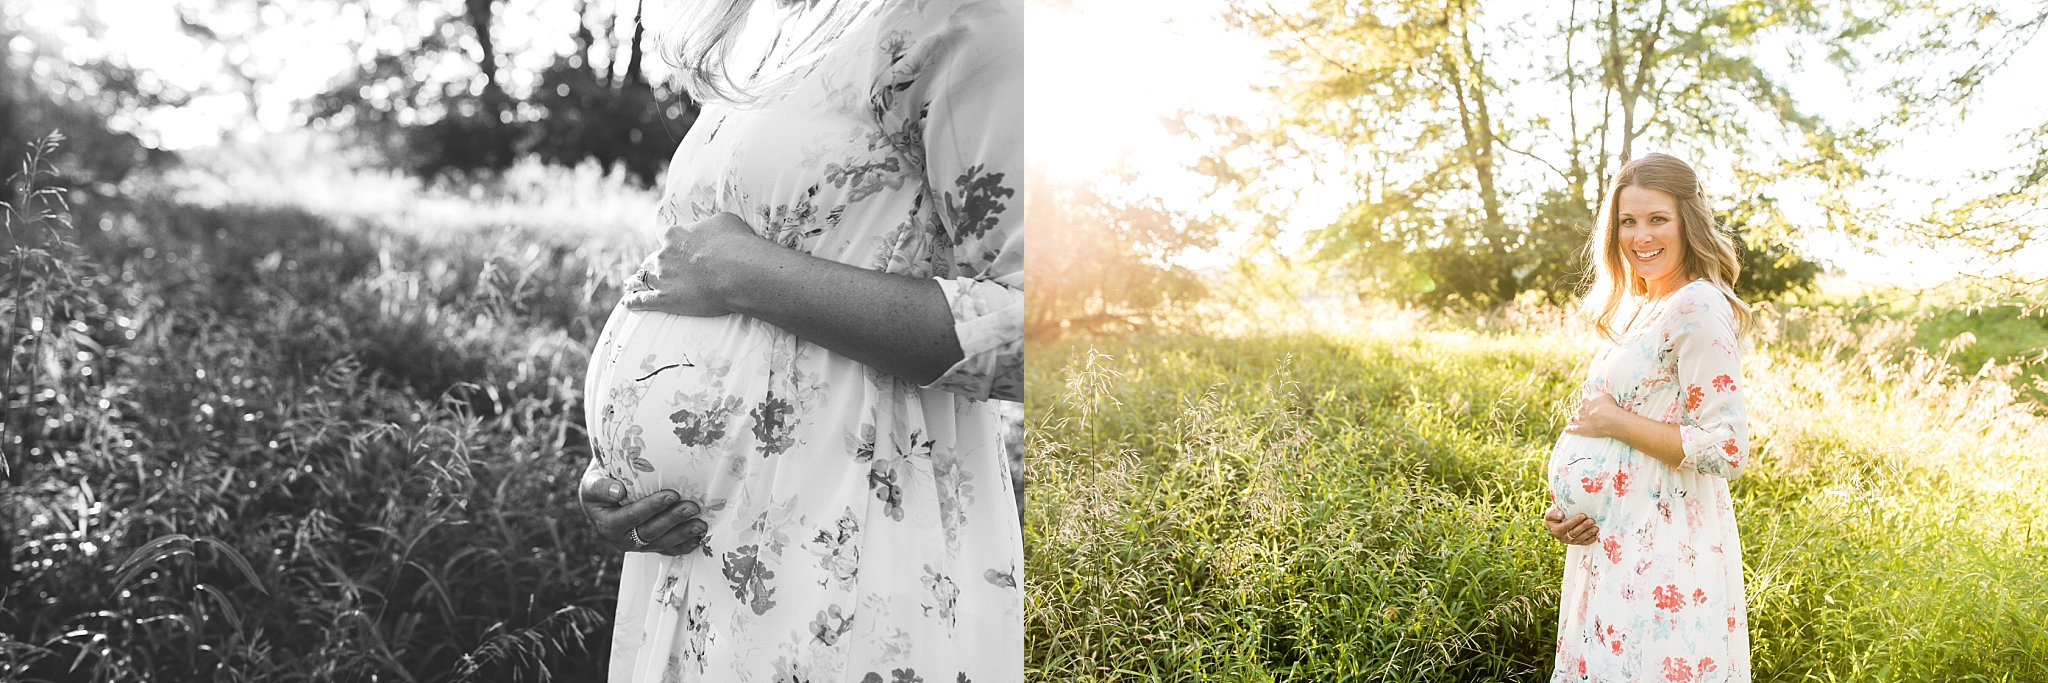 Allentown Maternity Session